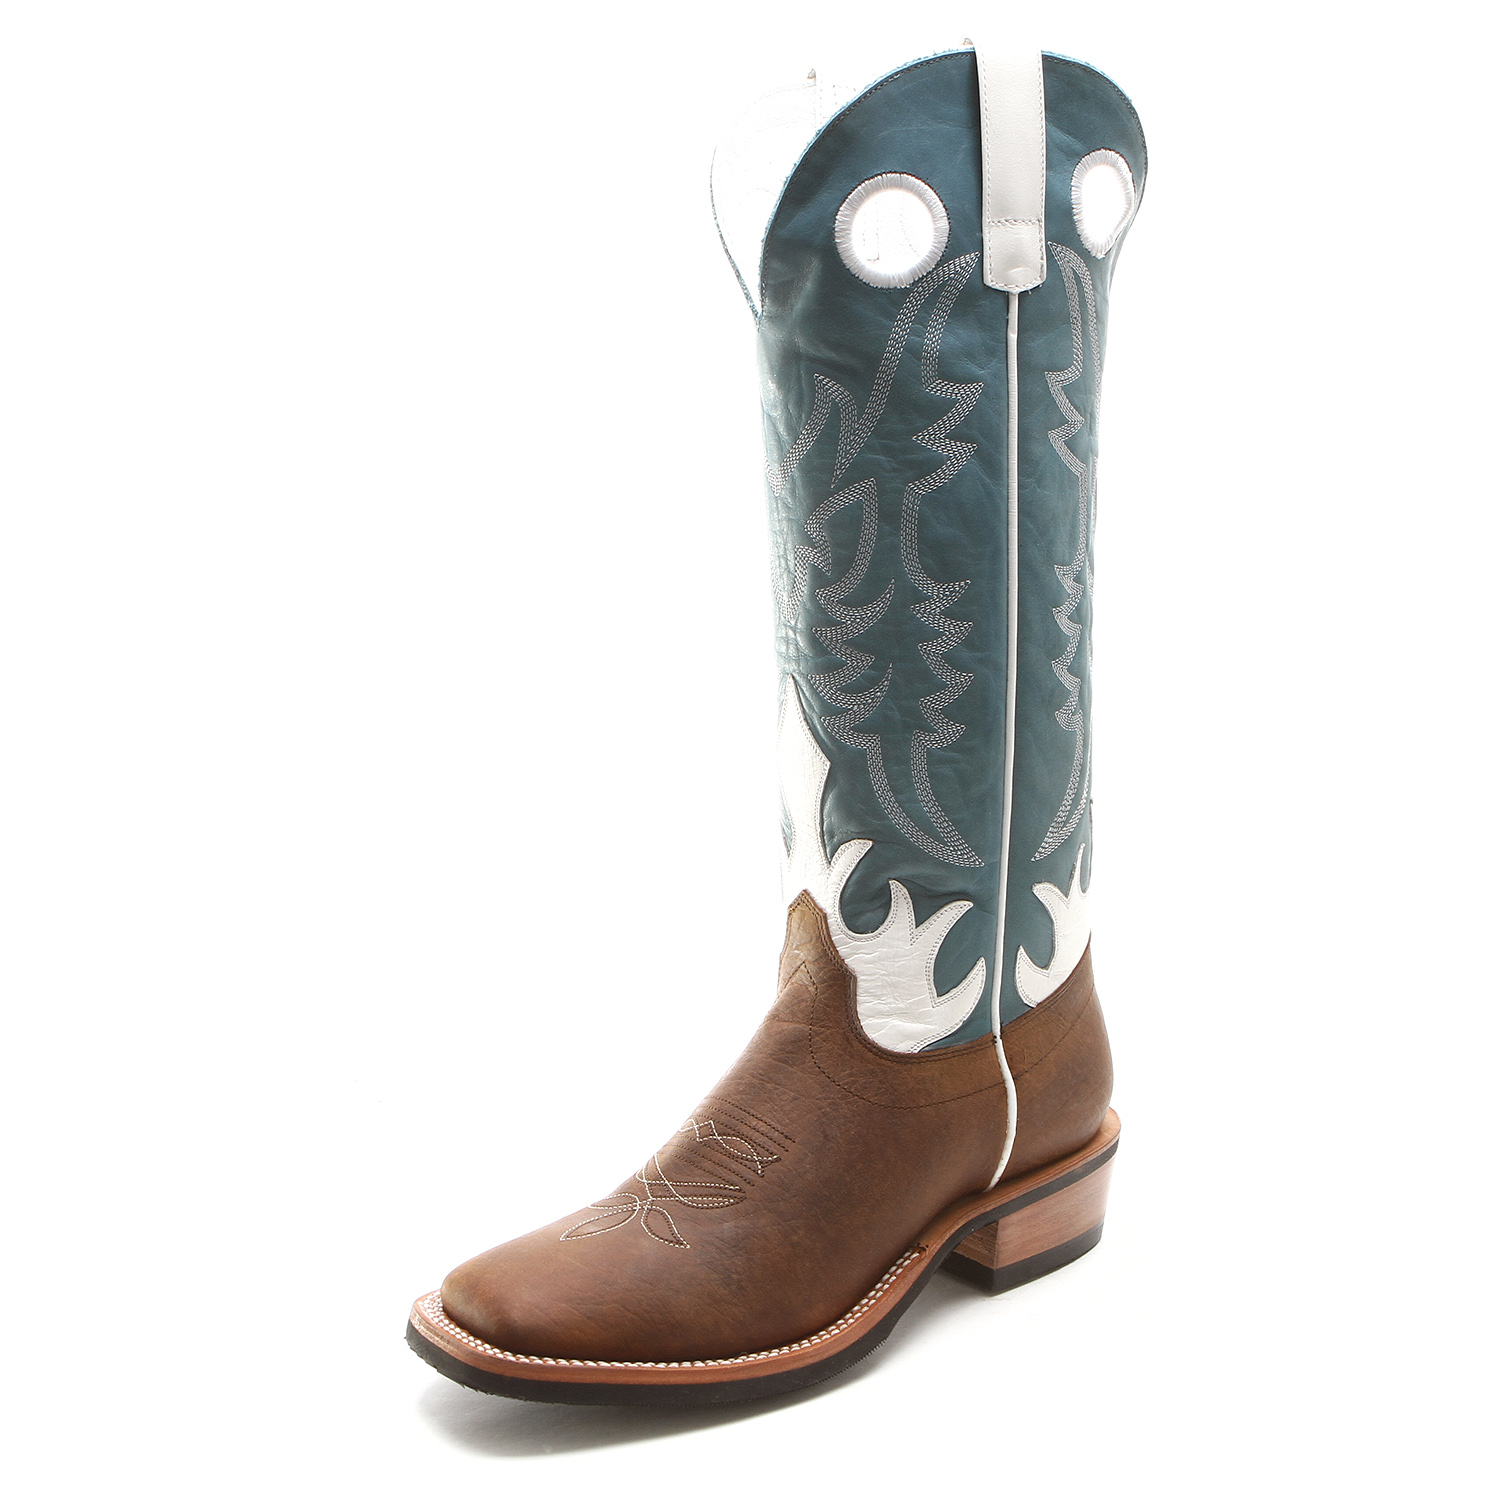 Olathe Men&39s Tall Top Square Toe Distressed Cowboy Boots